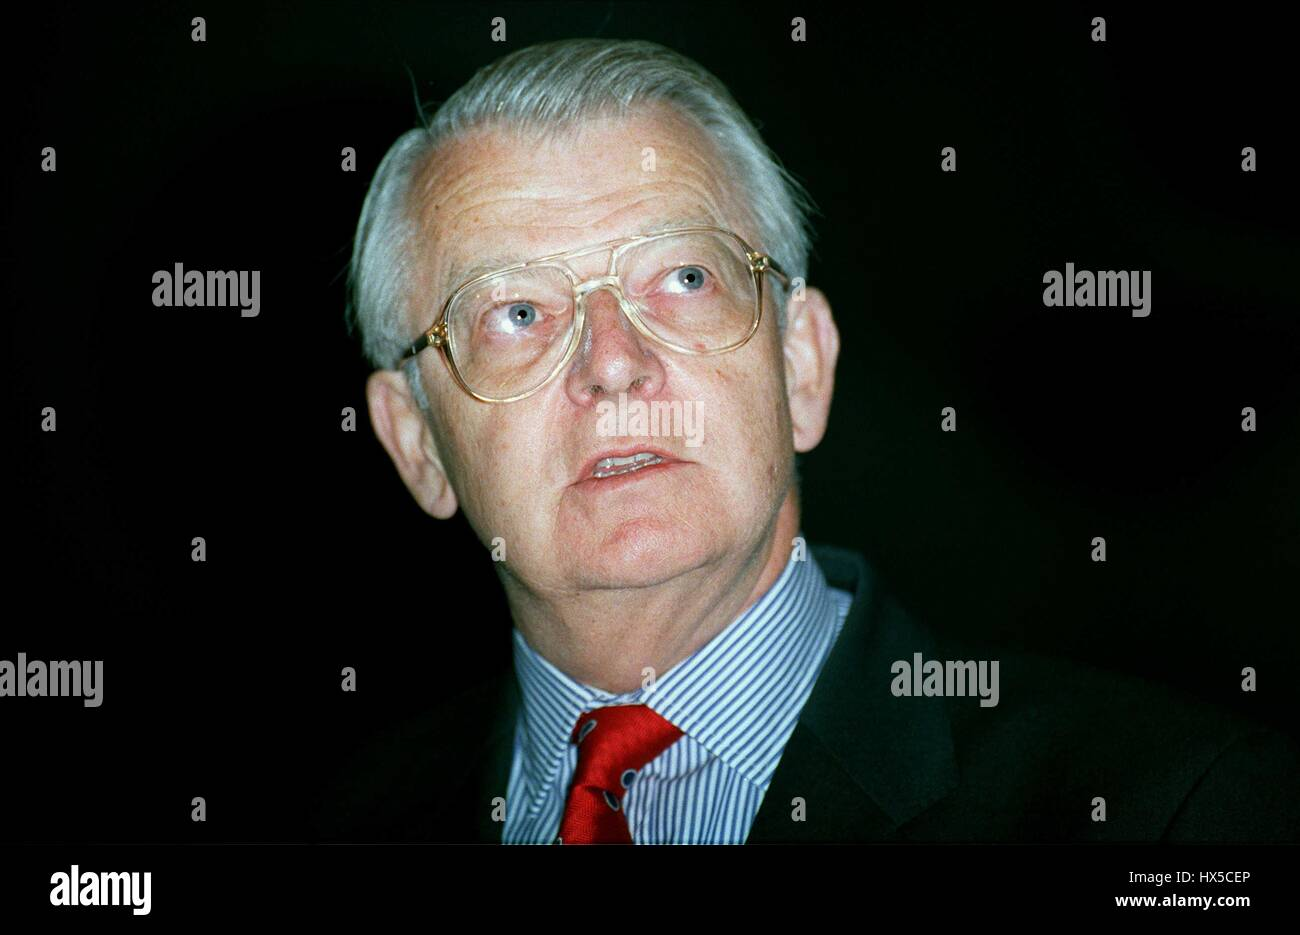 SIR PETER WALTERS PRESIDENT INST. OF DIRECTORS 13 May 1992 - Stock Image